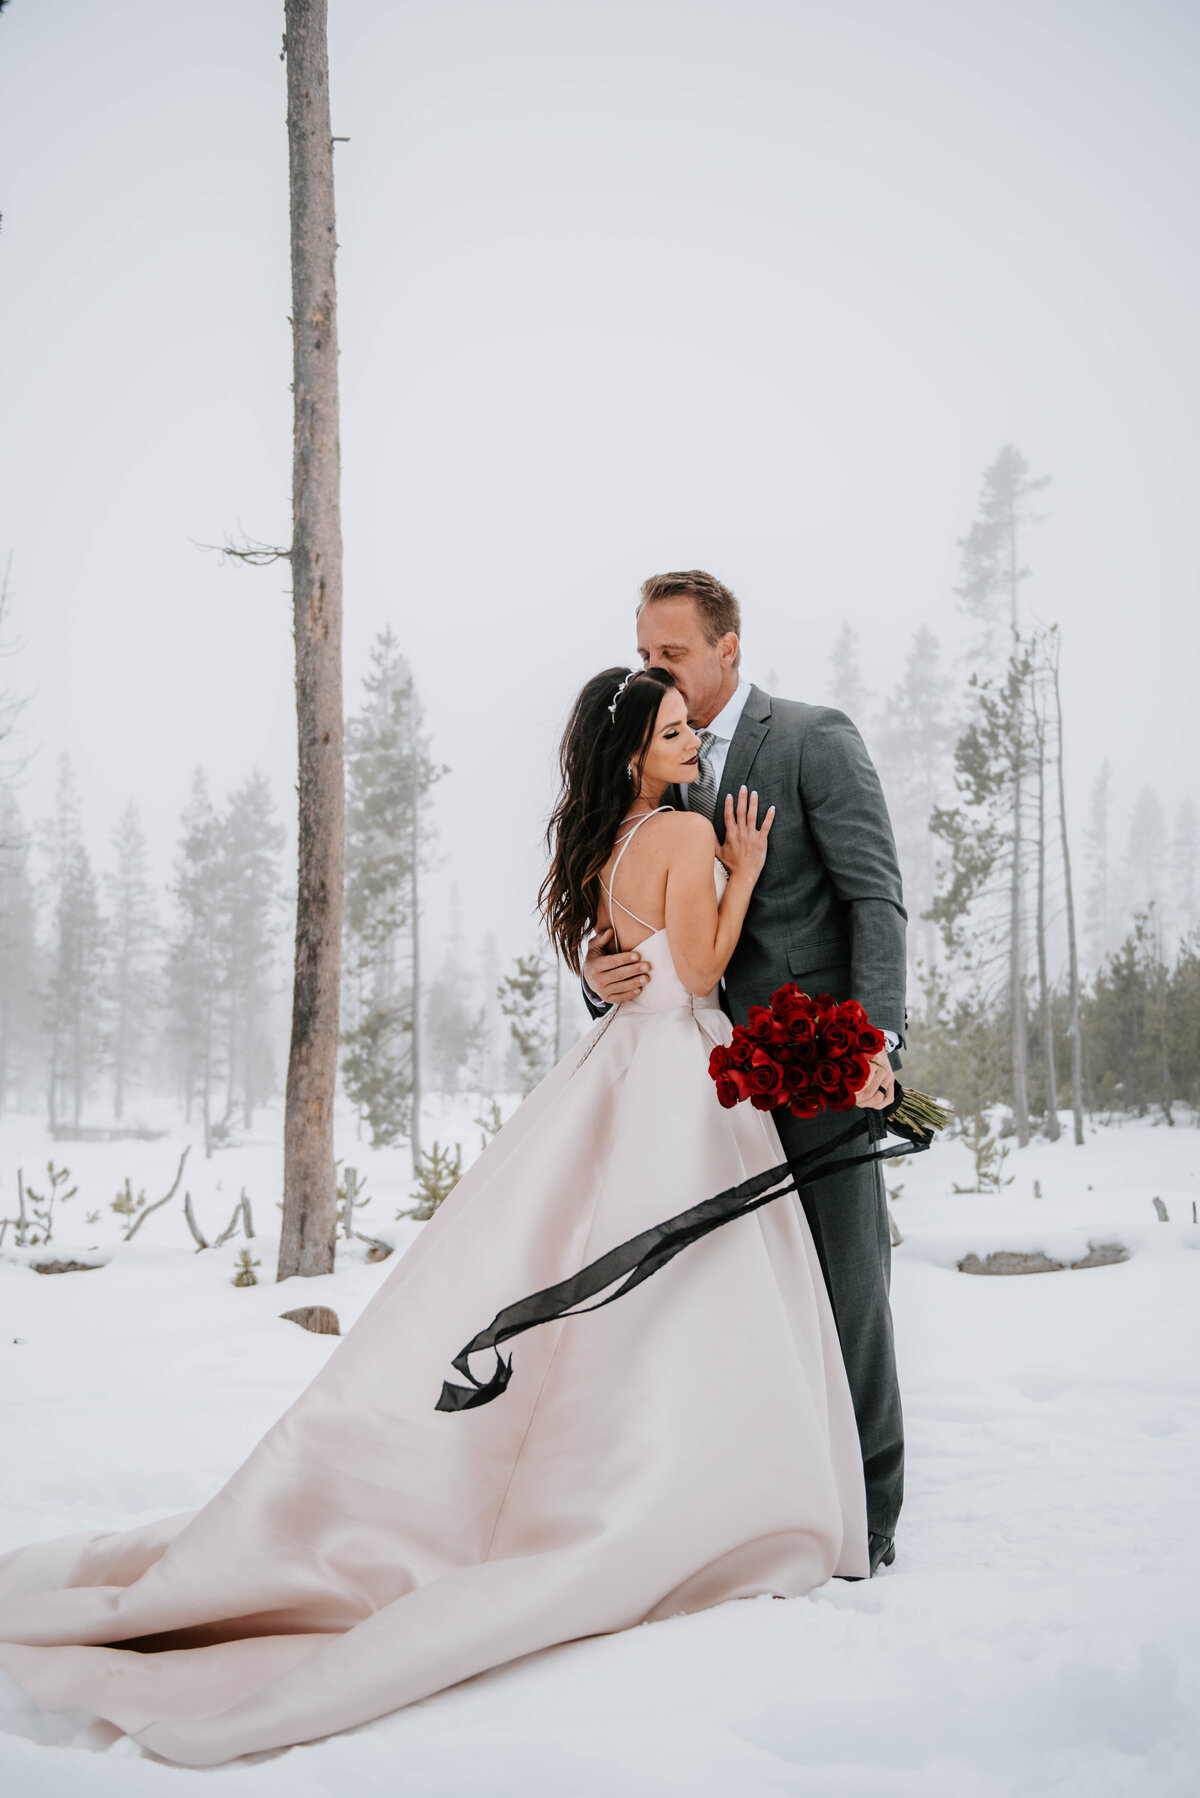 mt-bachelor-snow-winter-elopement-bend-oregon-wedding-photographer-2271